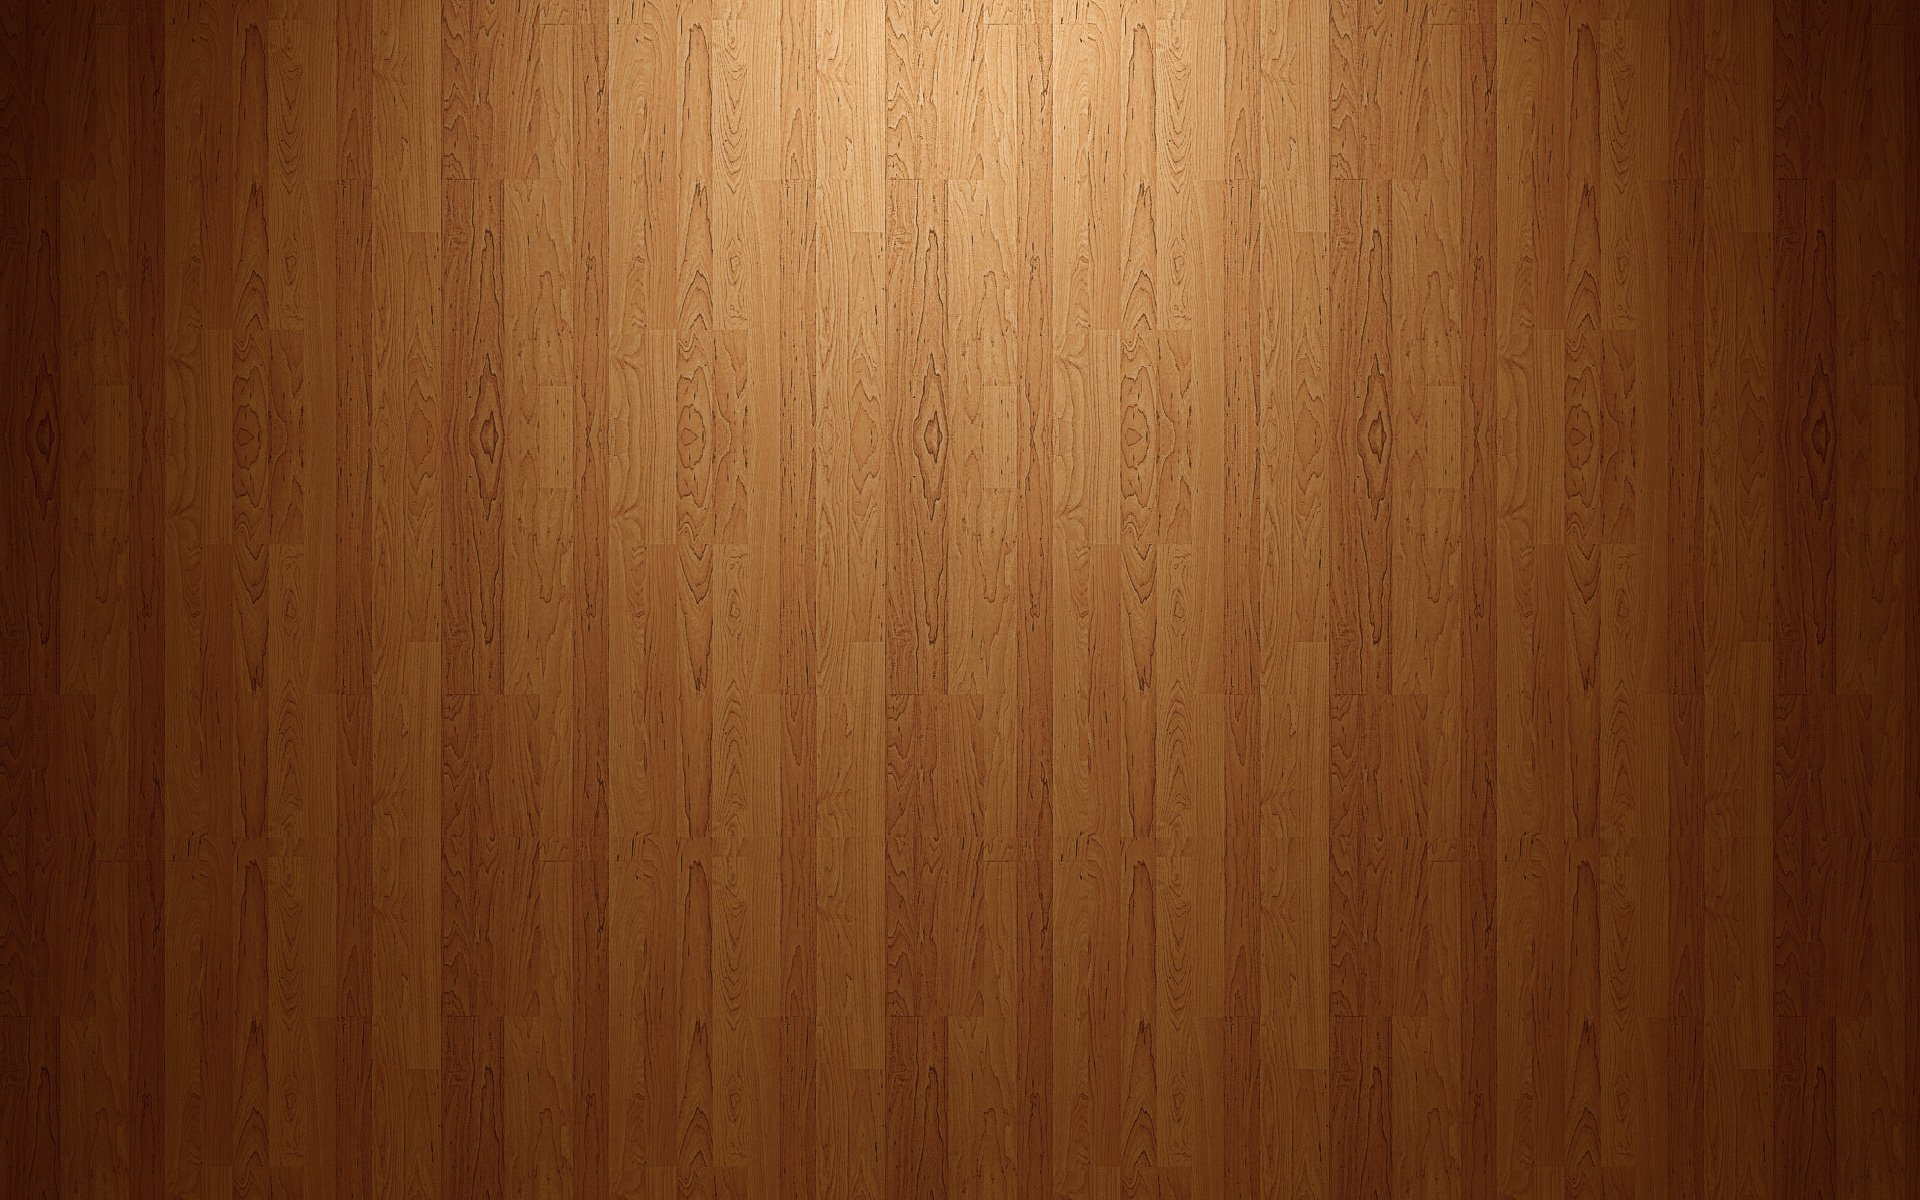 183 Wood HD Wallpapers | Backgrounds - Wallpaper Abyss